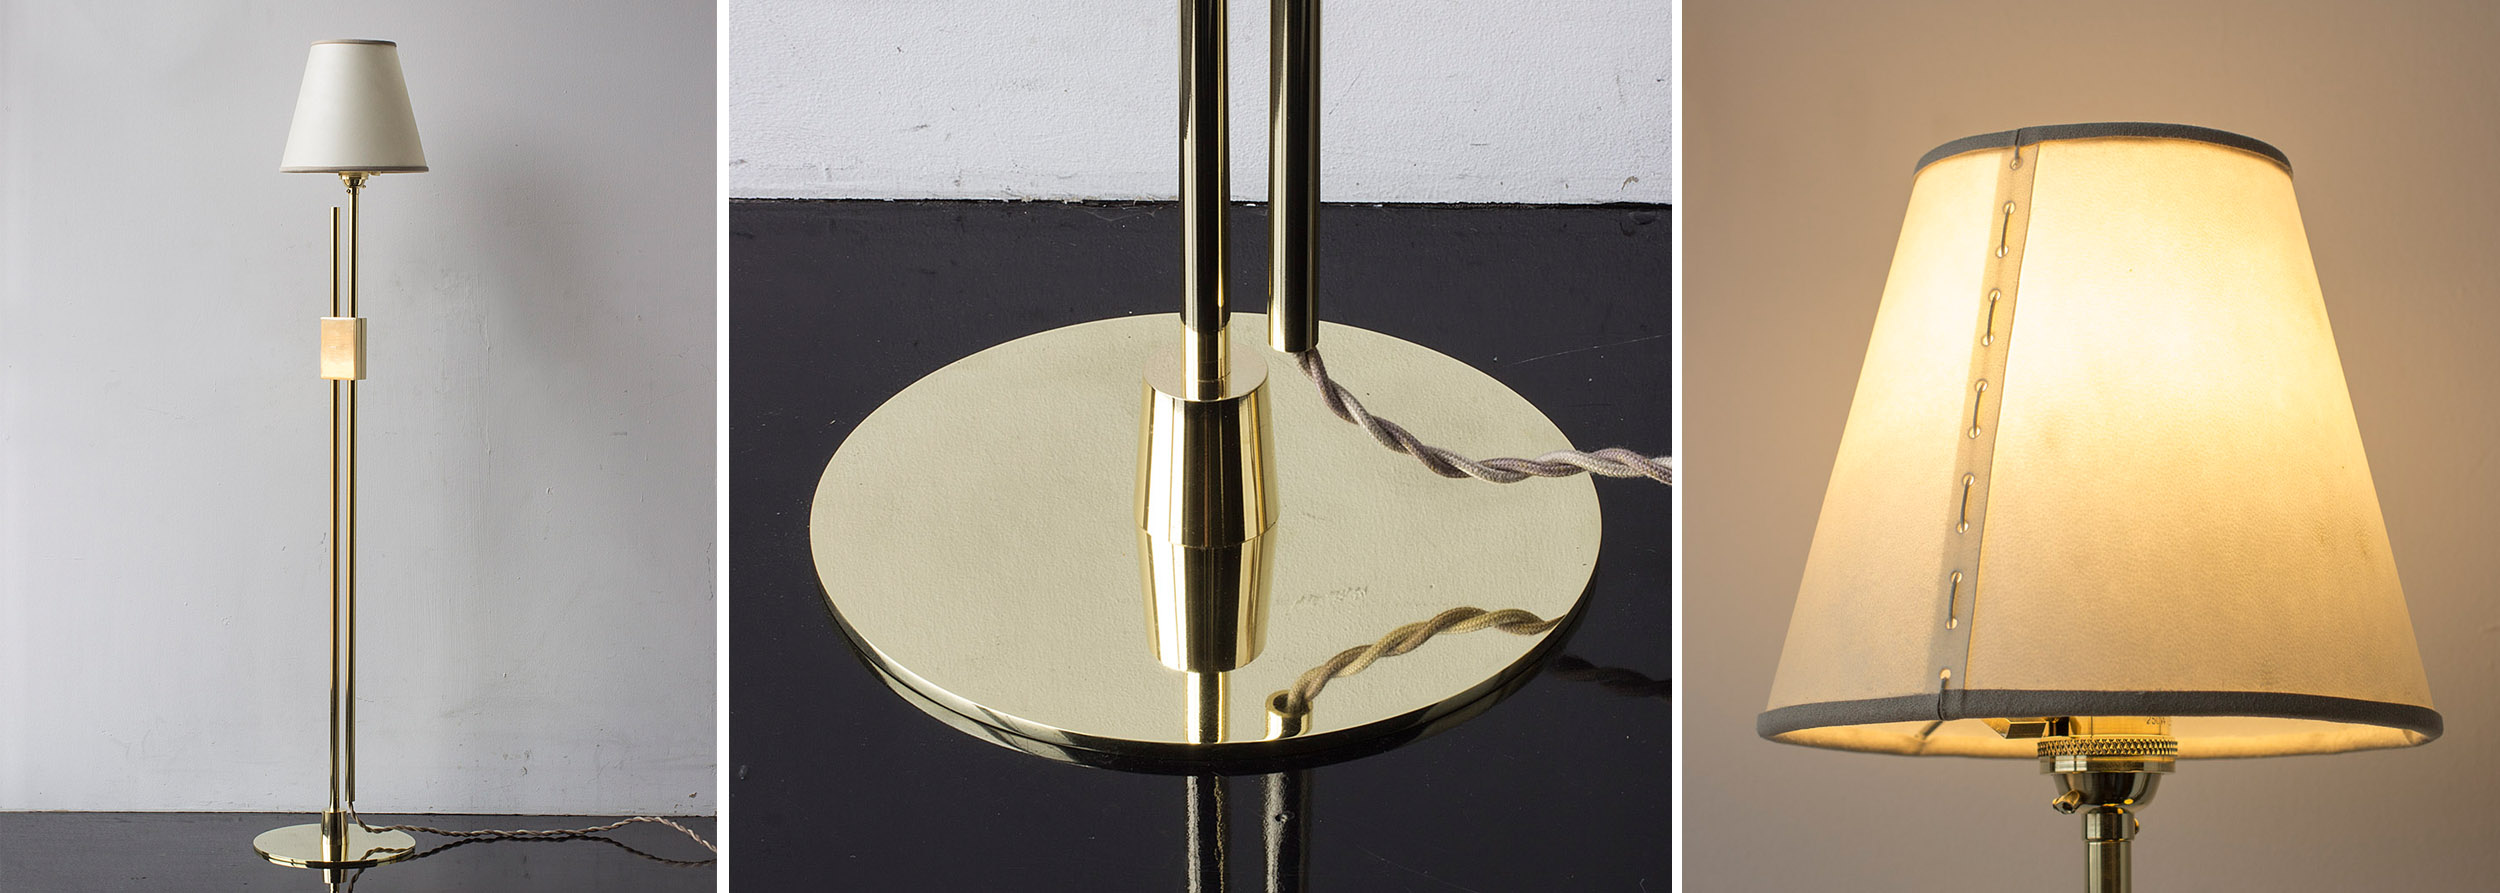 Series 04 Floor Lamp, Polished unlacquered brass and goatskin parchment shade with ultrasuede trim,  2019.